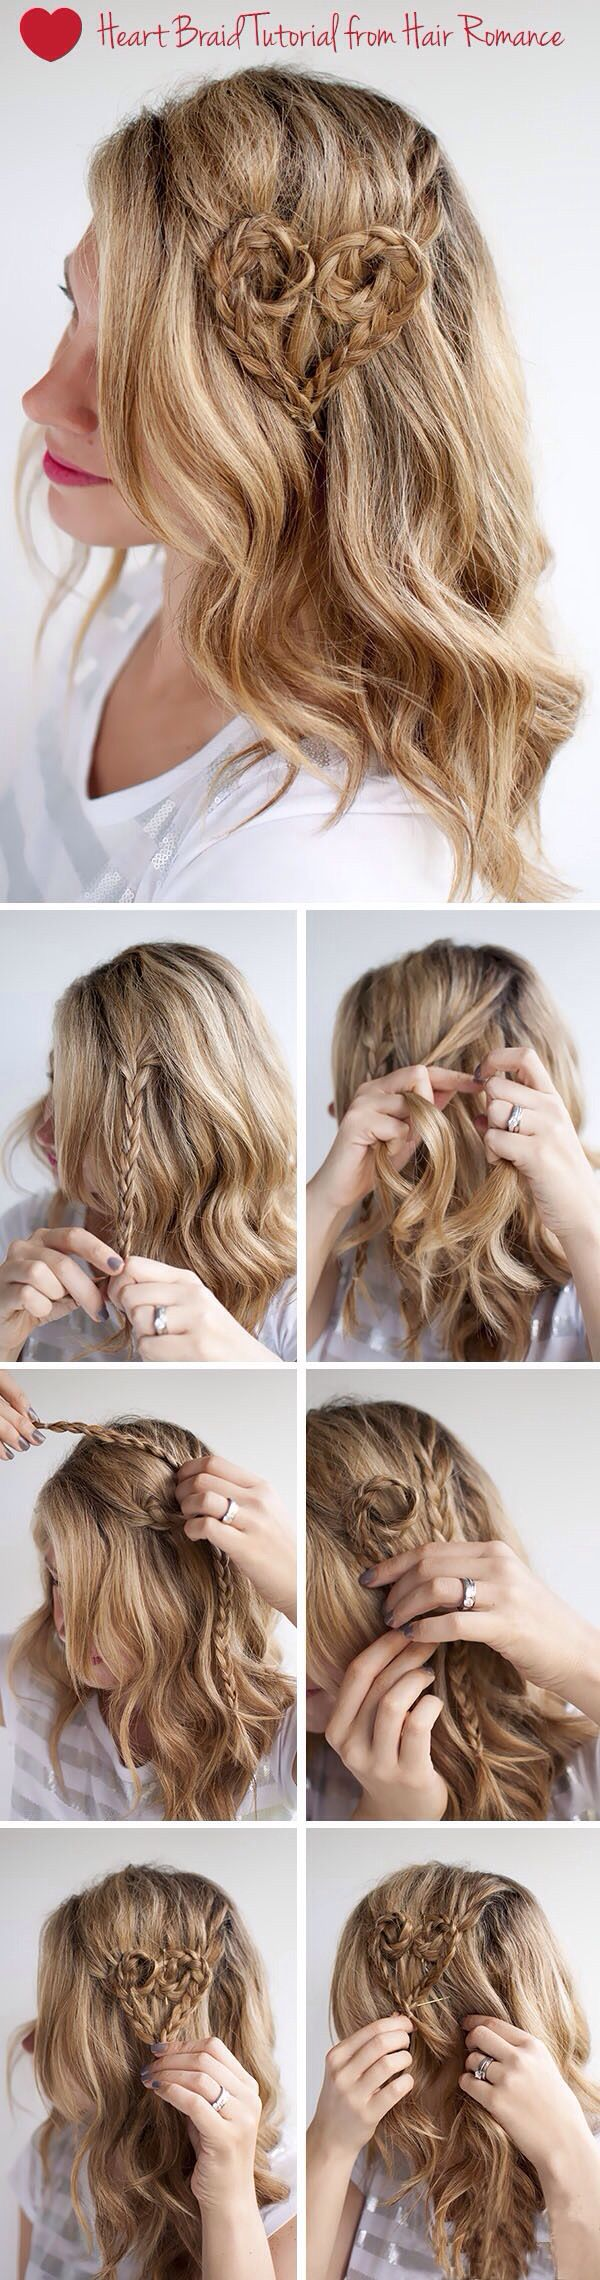 valentine heart braid